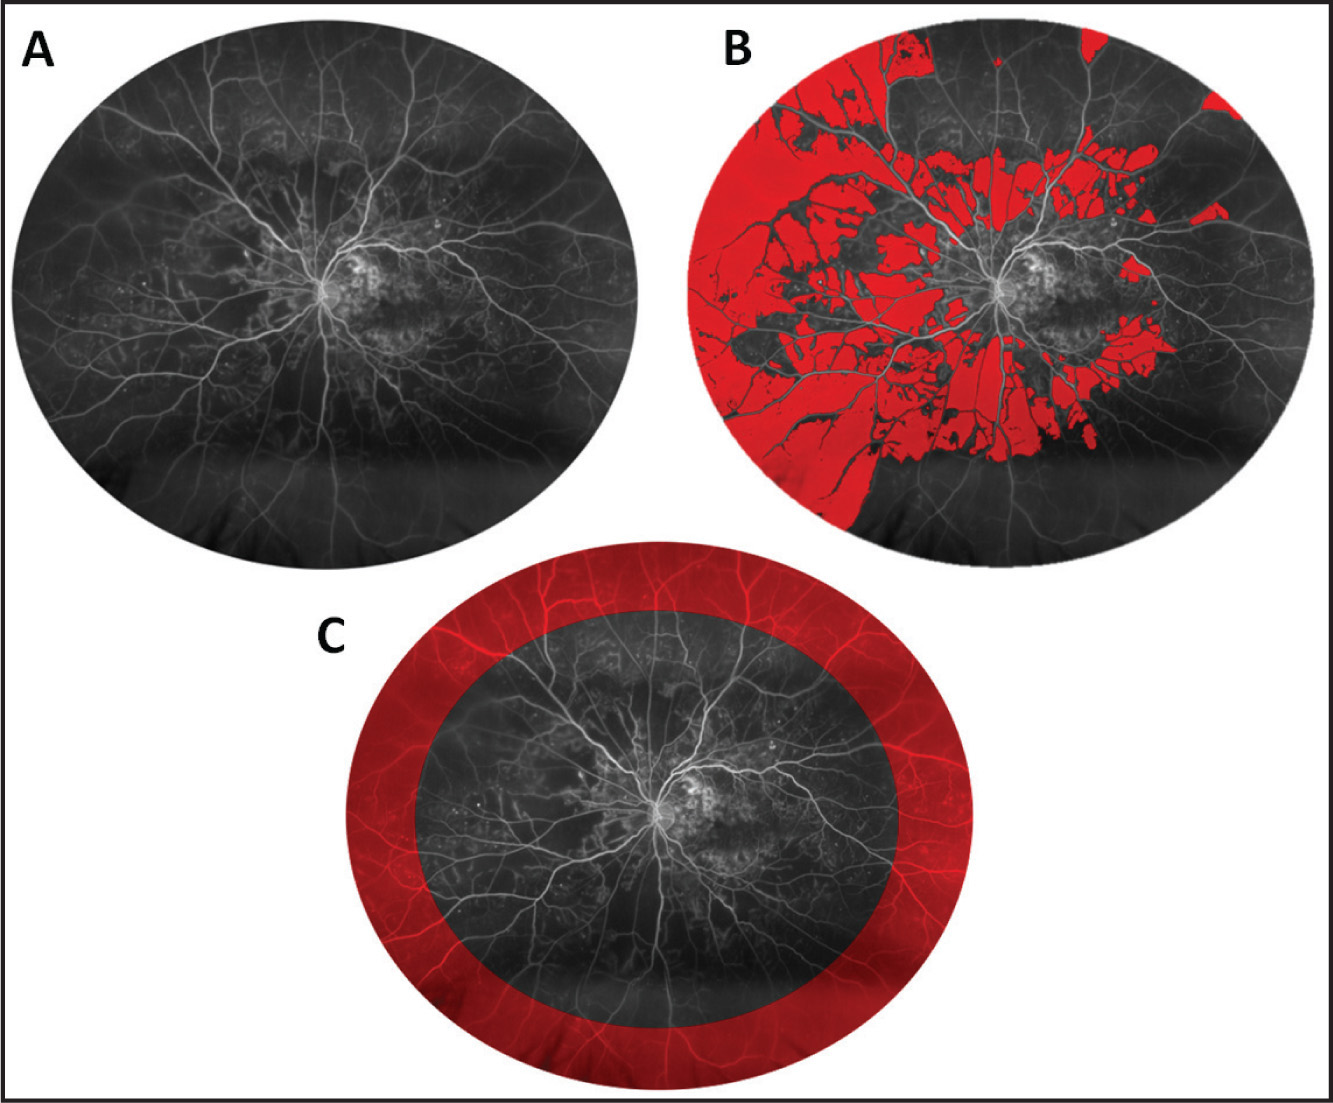 Clinical example quantifying retinal nonperfusion in a patient with diabetic retinopathy. (A) Standard field defined to quantify nonperfusion. (B) Selection of area of retinal nonperfusion (red). (C) Selection of peripheral retina (red).